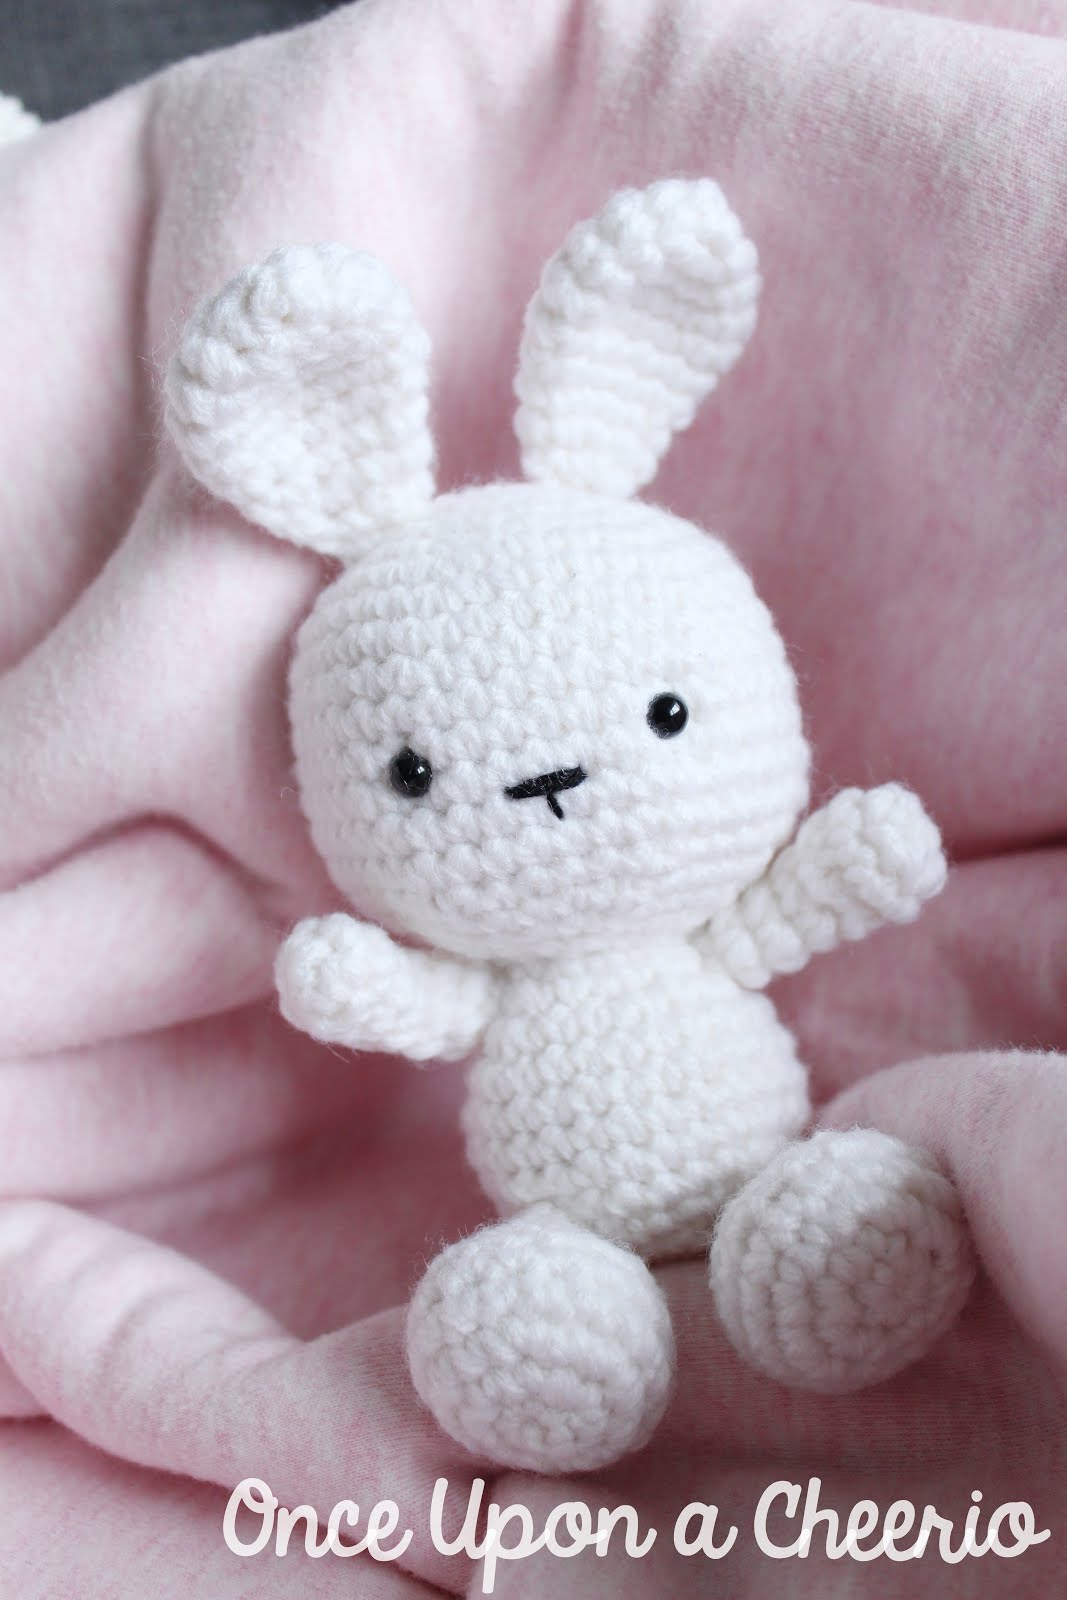 Classic Amigurumi Bunny Crochet Pattern - Once Upon a Cheerio